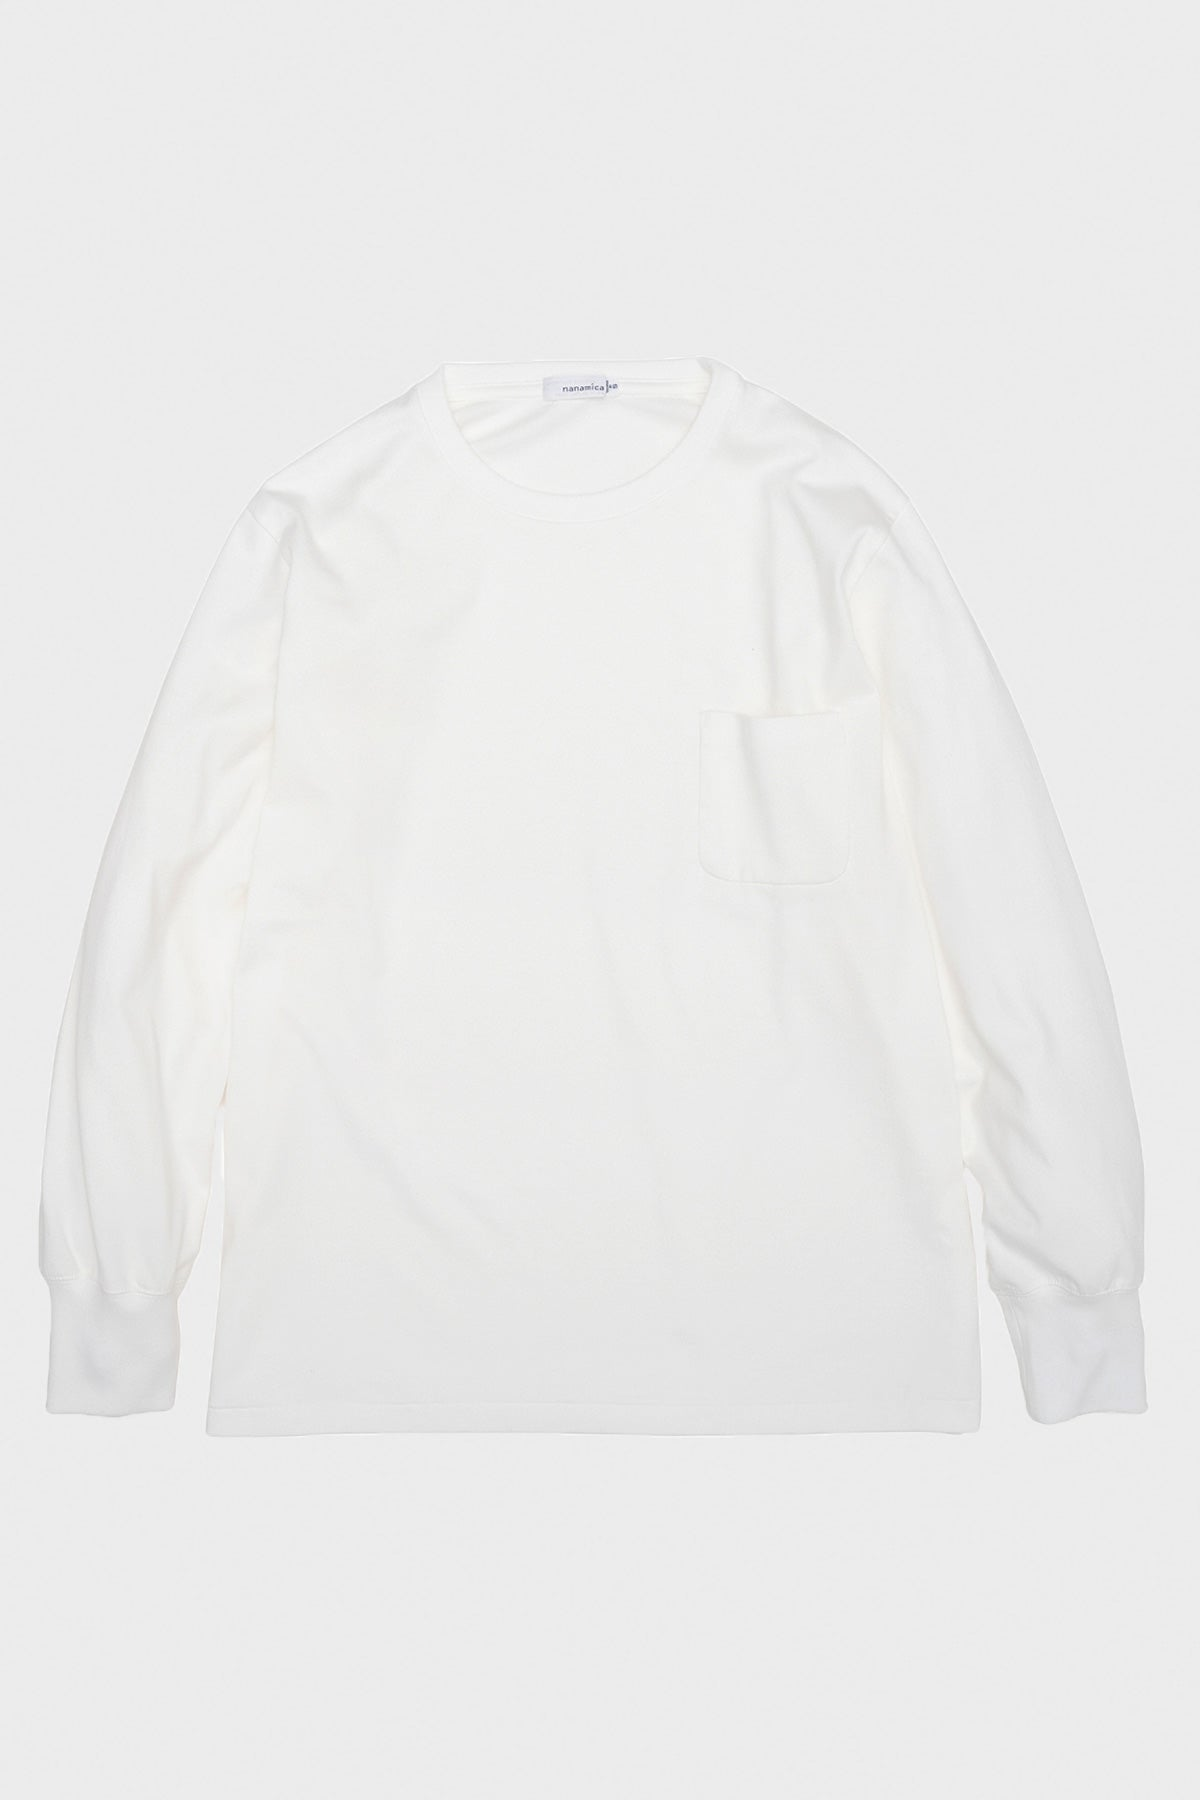 nanamica - Long Sleeve Pocket Tee - Off White - Canoe Club